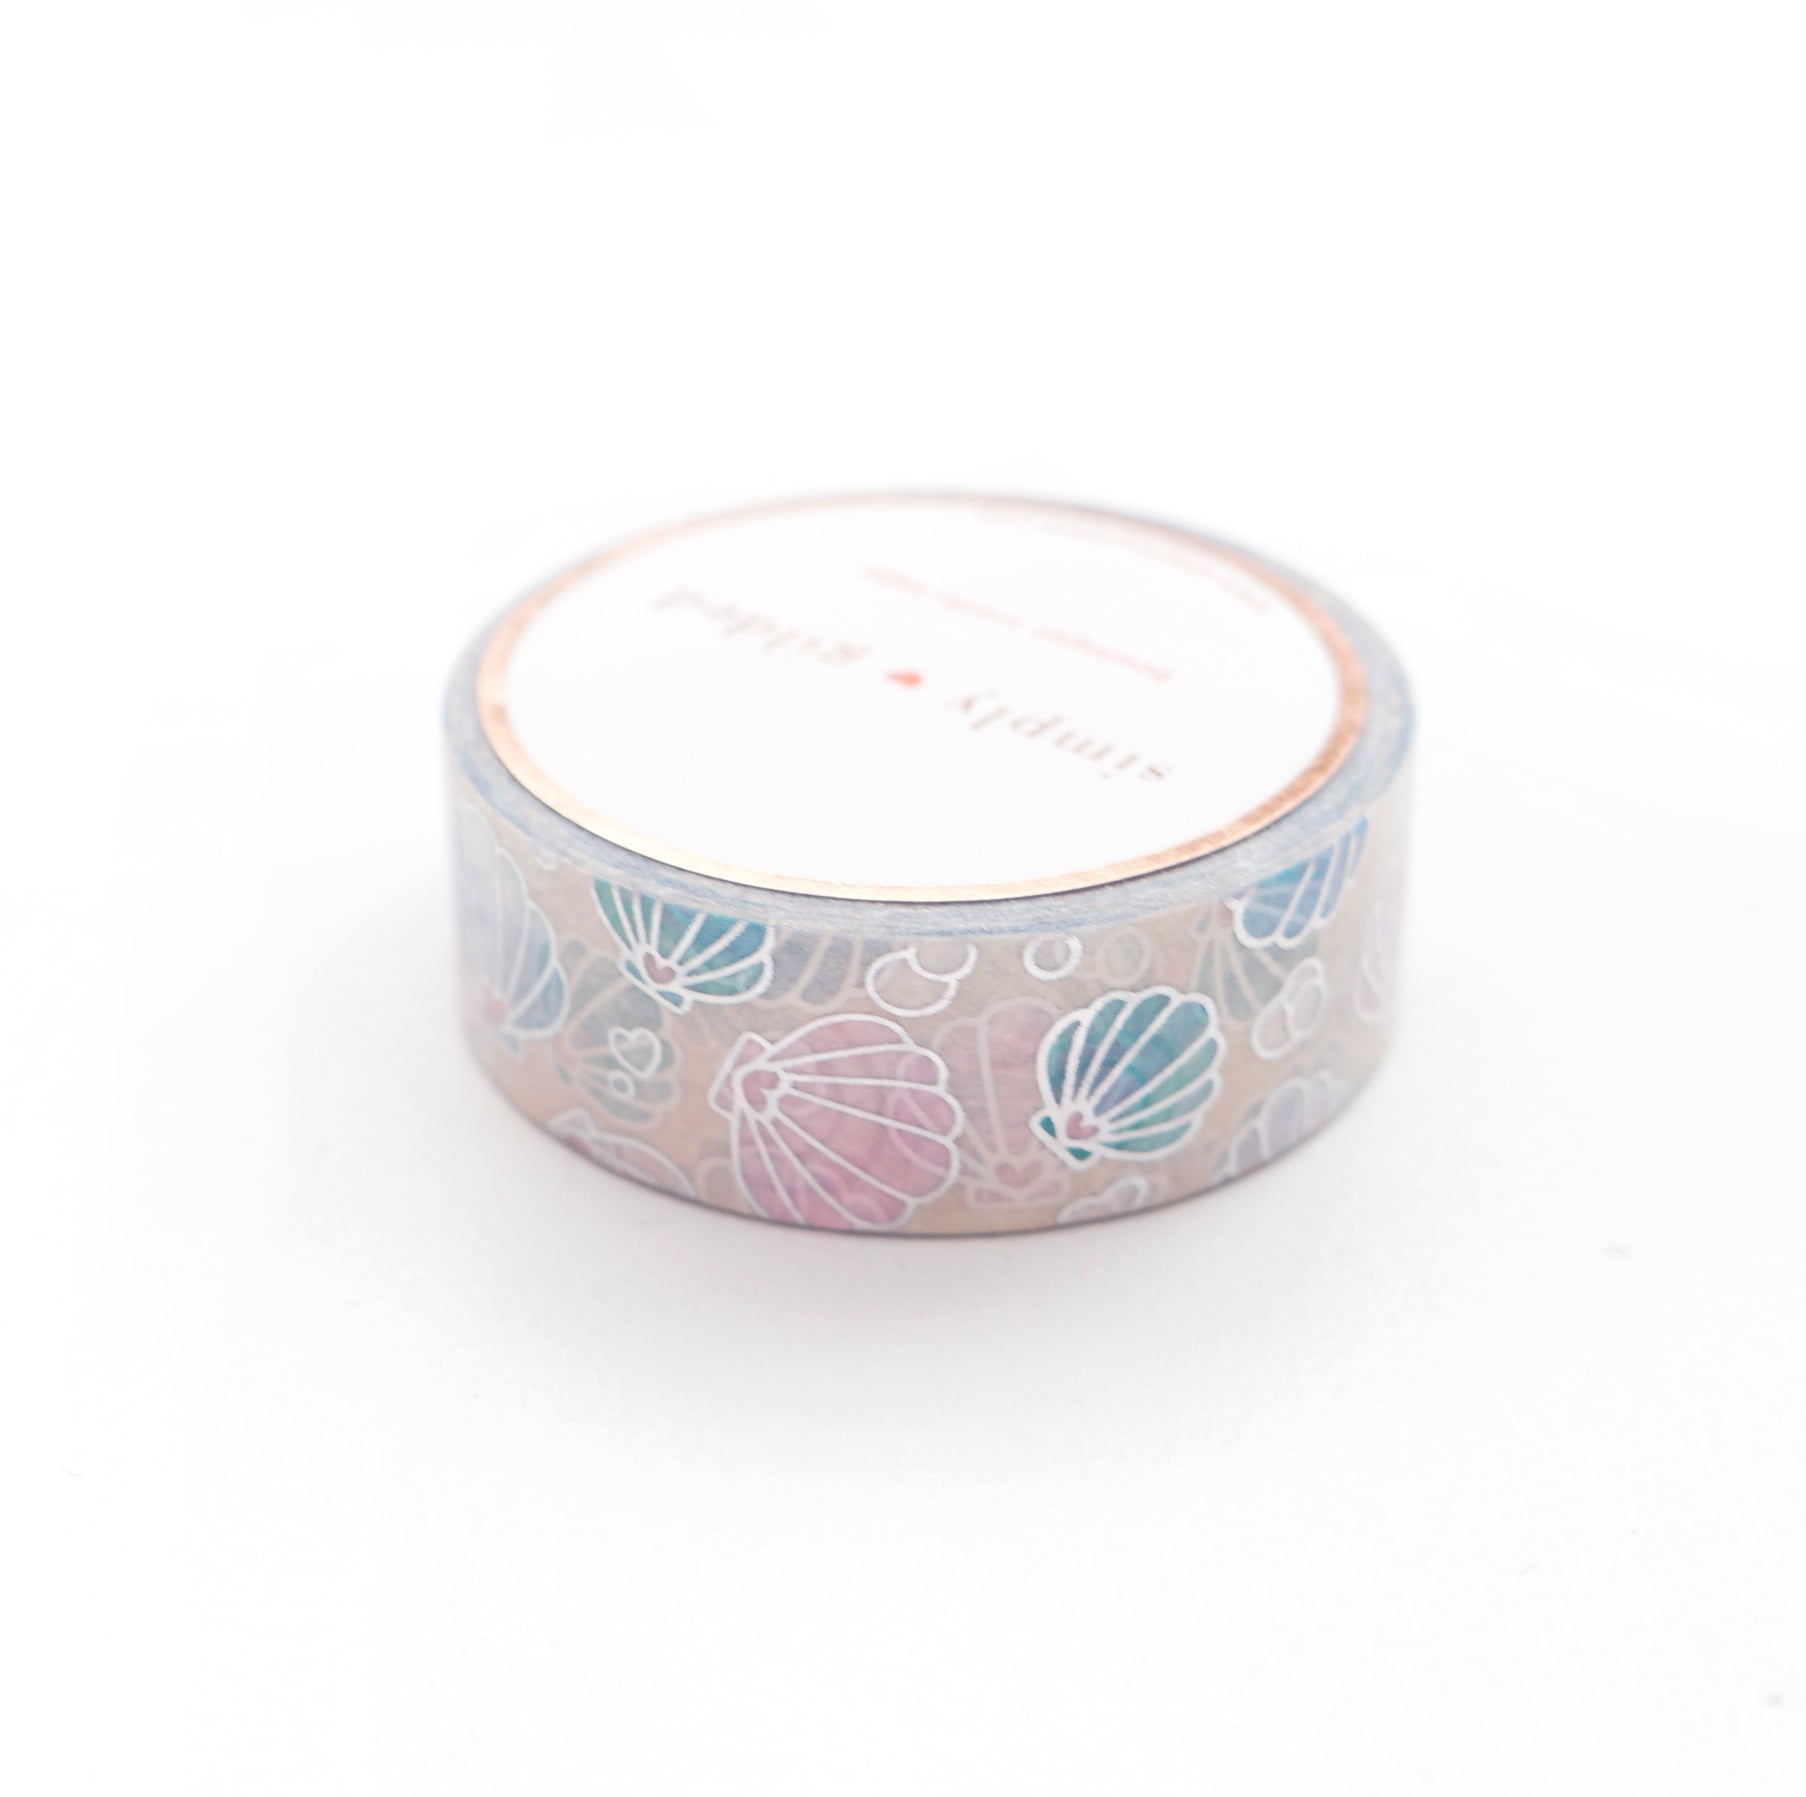 WASHI TAPE 15mm - SAND She Sells Sea Shells + sparkler silver holo (Mermaid Dreams Release)